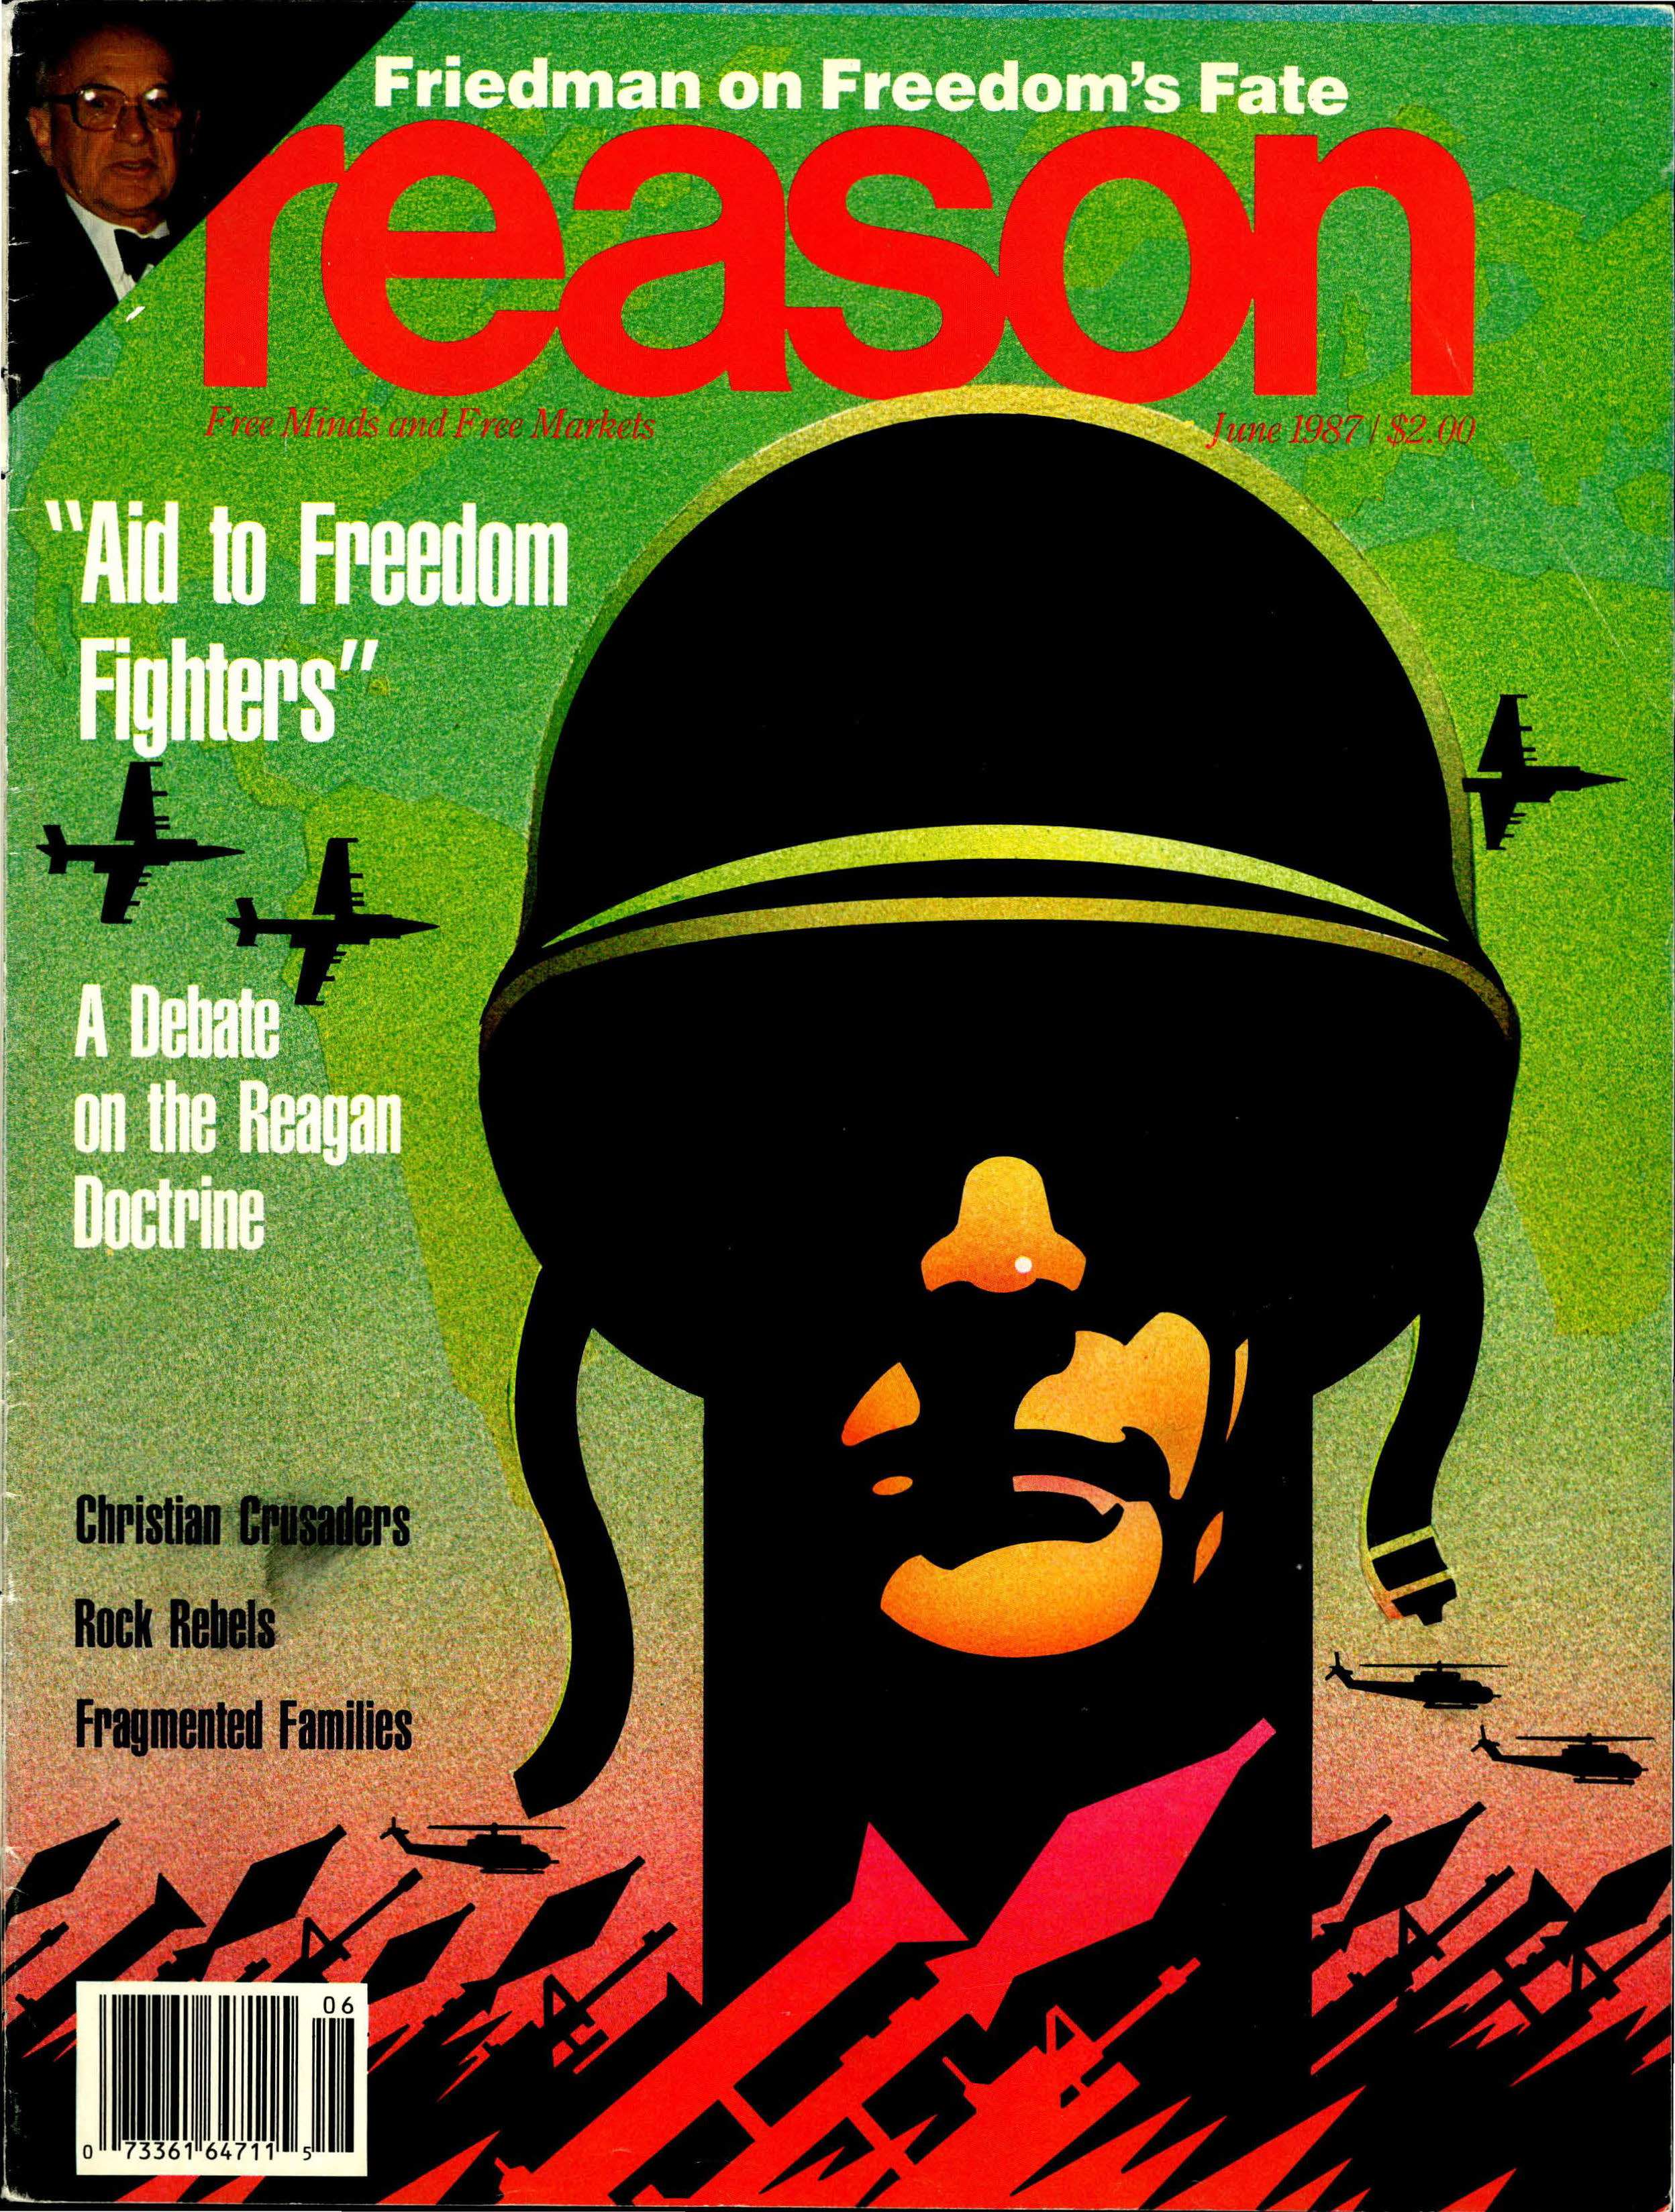 Reason Magazine, June 1987 cover image